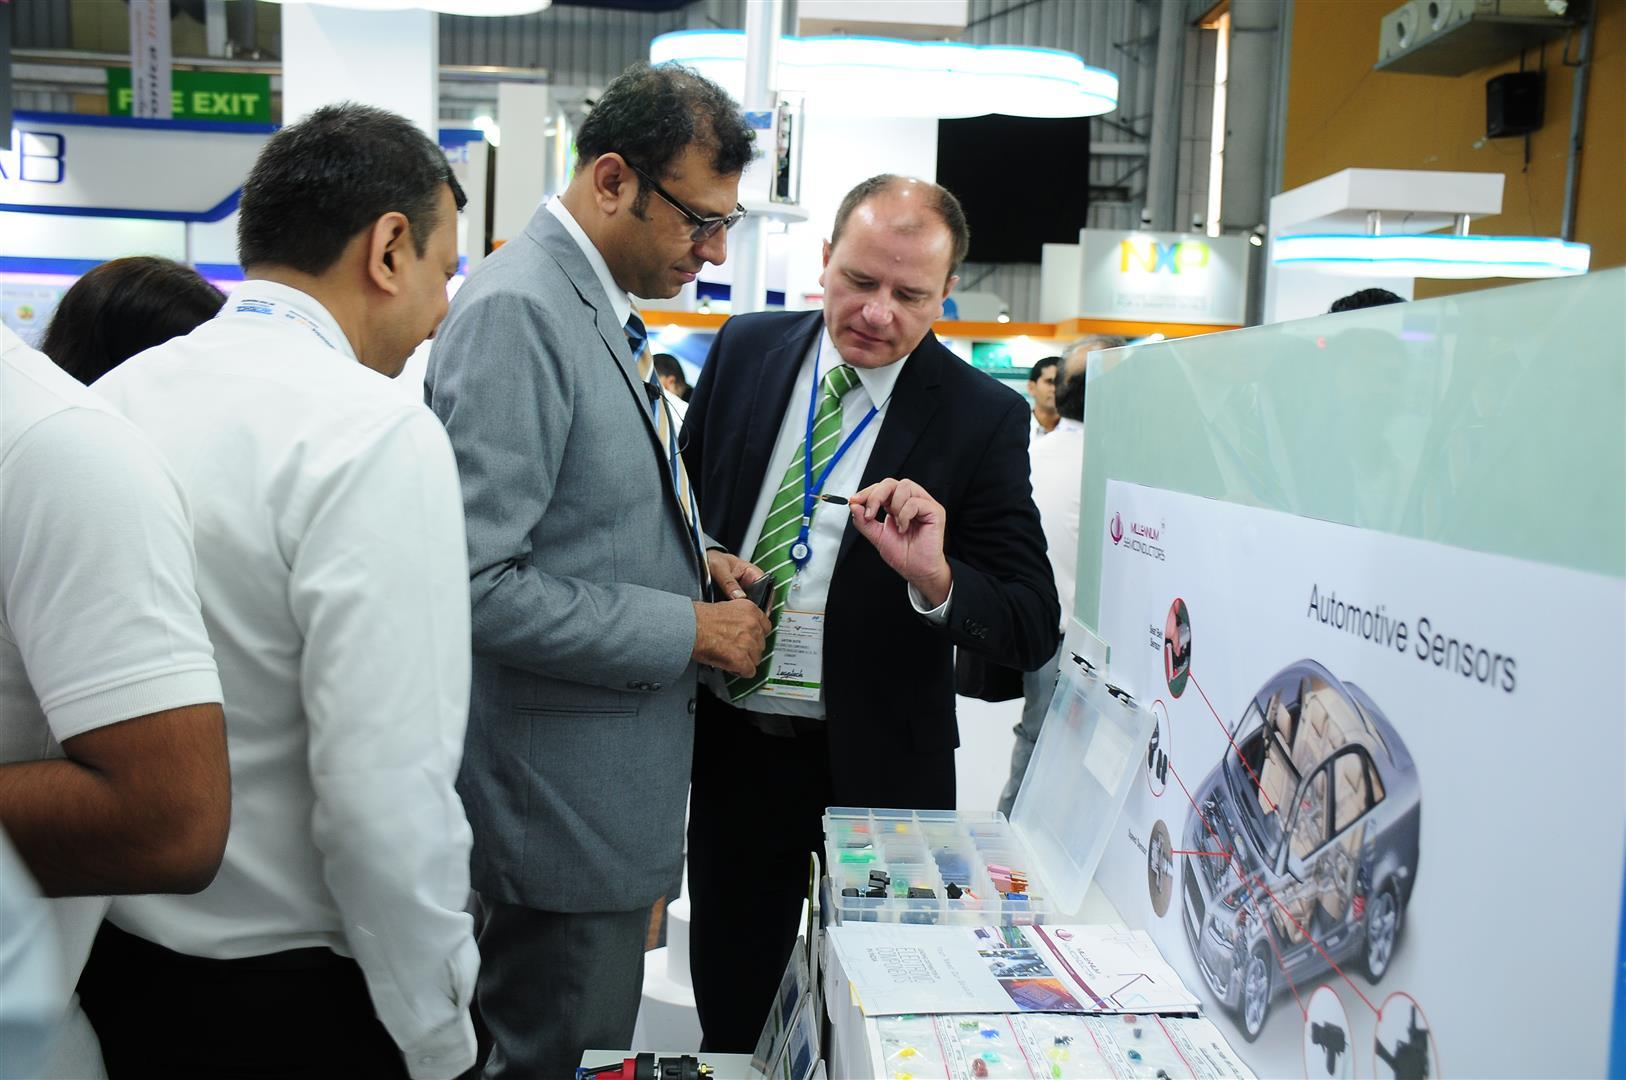 productronica-2019-trade-fair-electronics-manufacturing-development-november